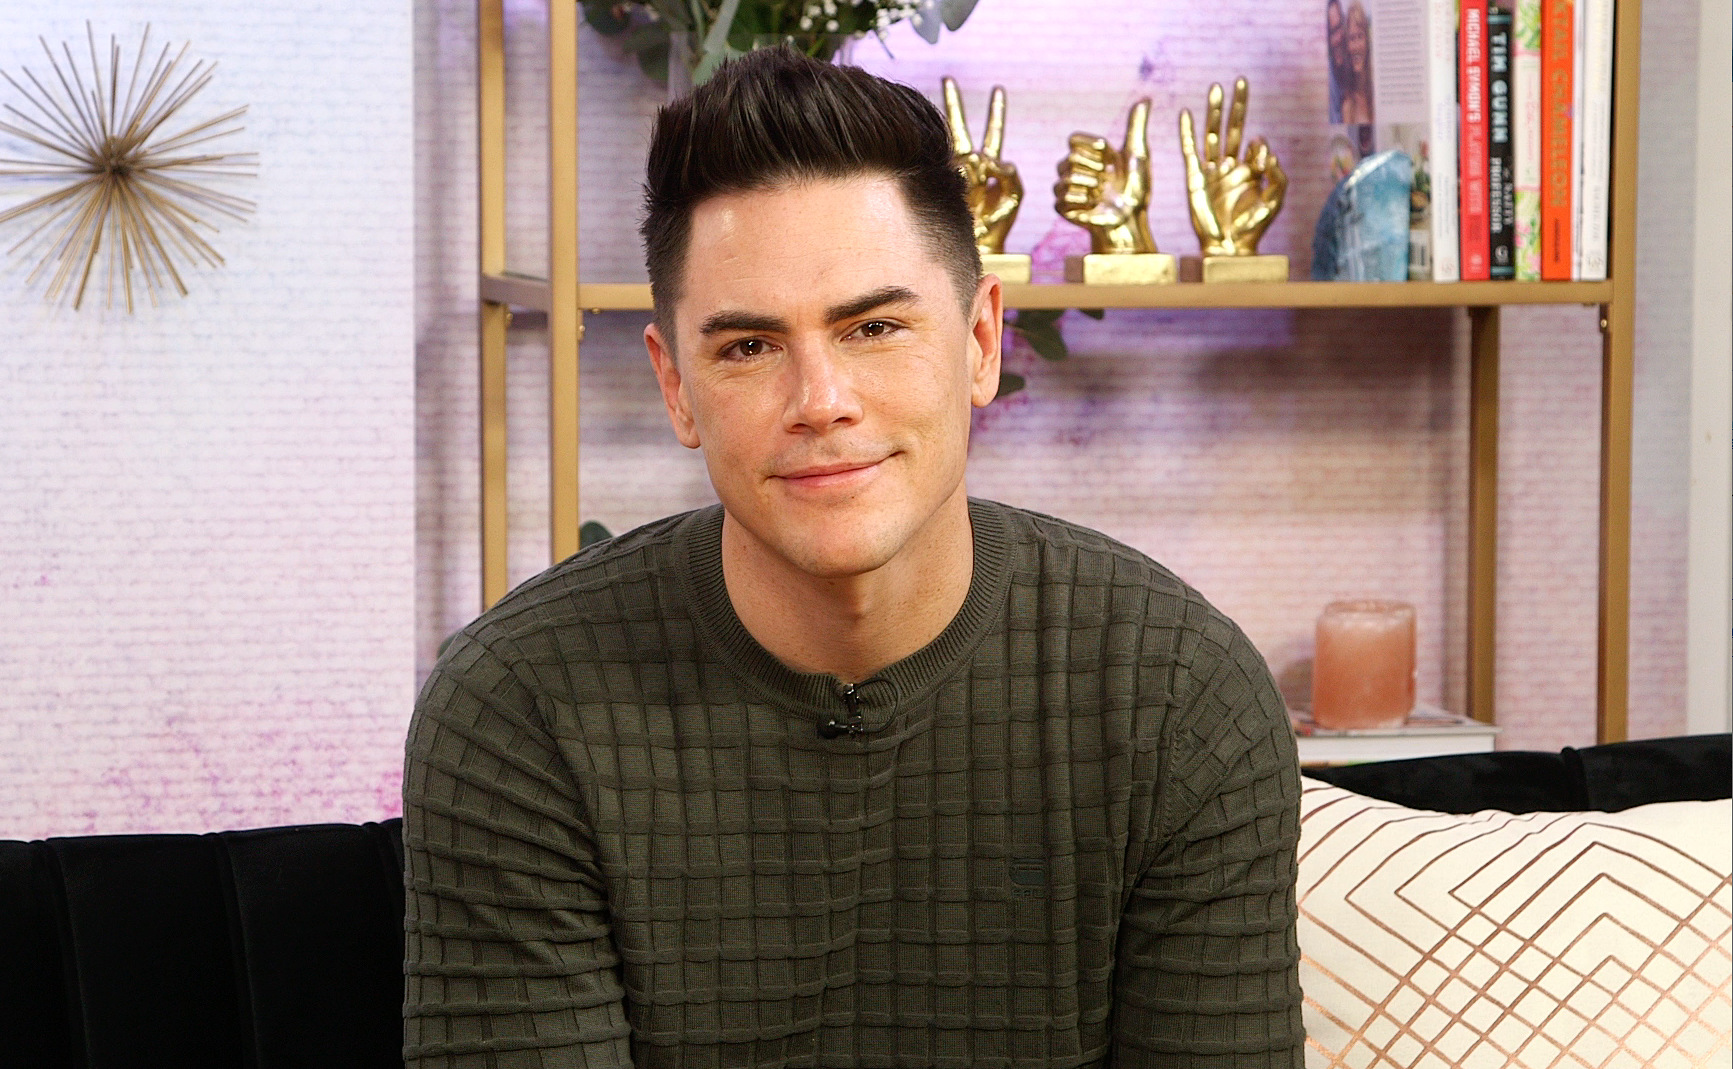 Tom-Sandoval-candlelight confessions